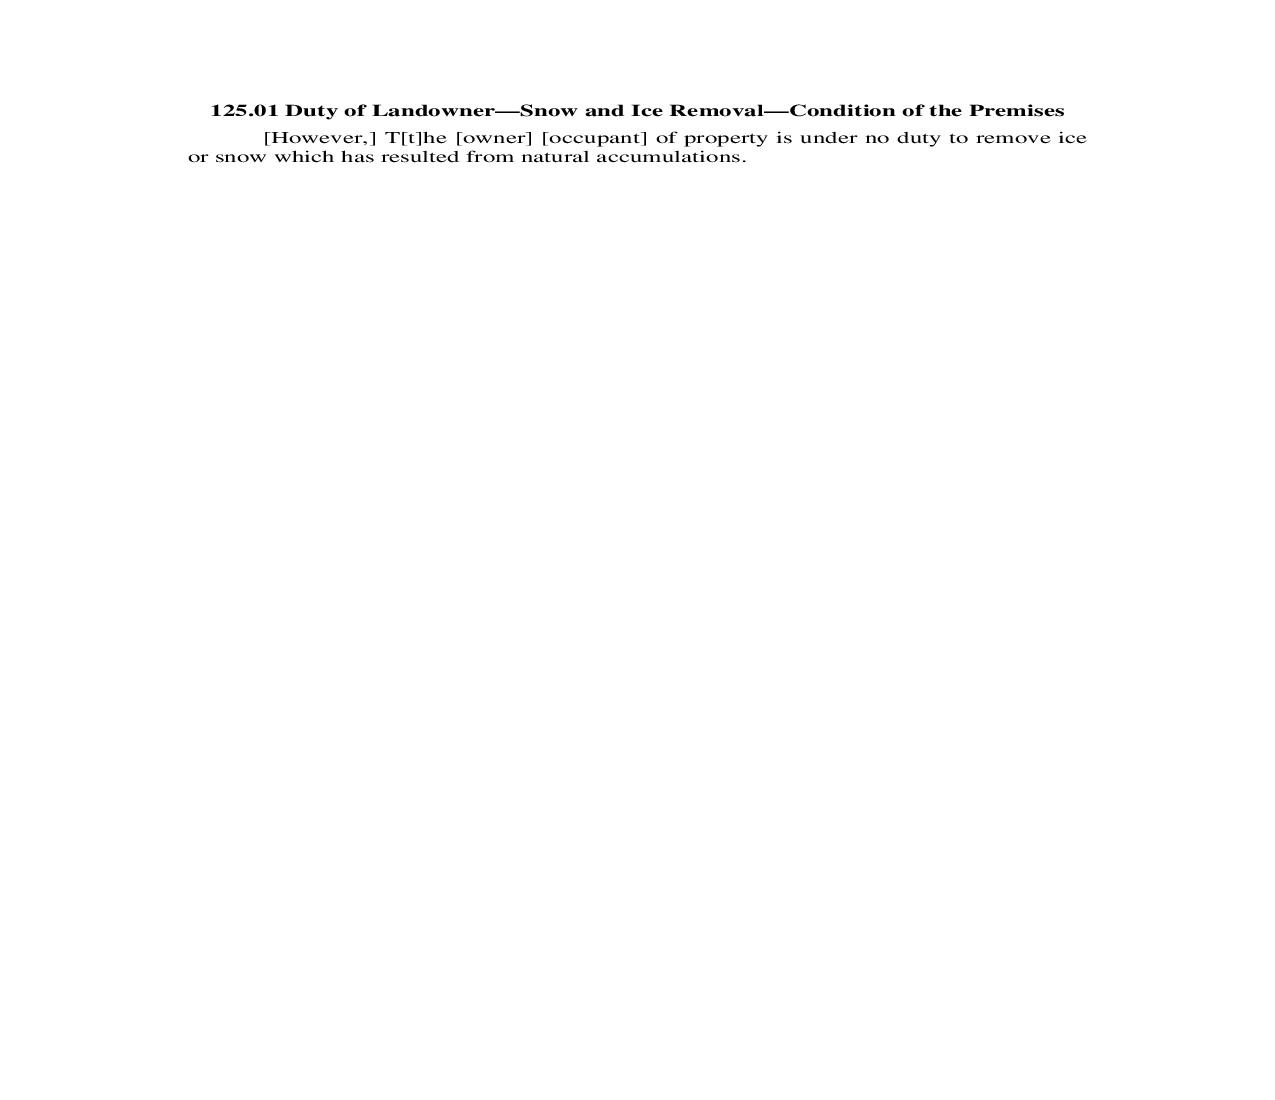 125.01. Duty of Landowner-Snow and Ice Removal-Condition of the Premises   Pdf Doc Docx   Illinois_JI